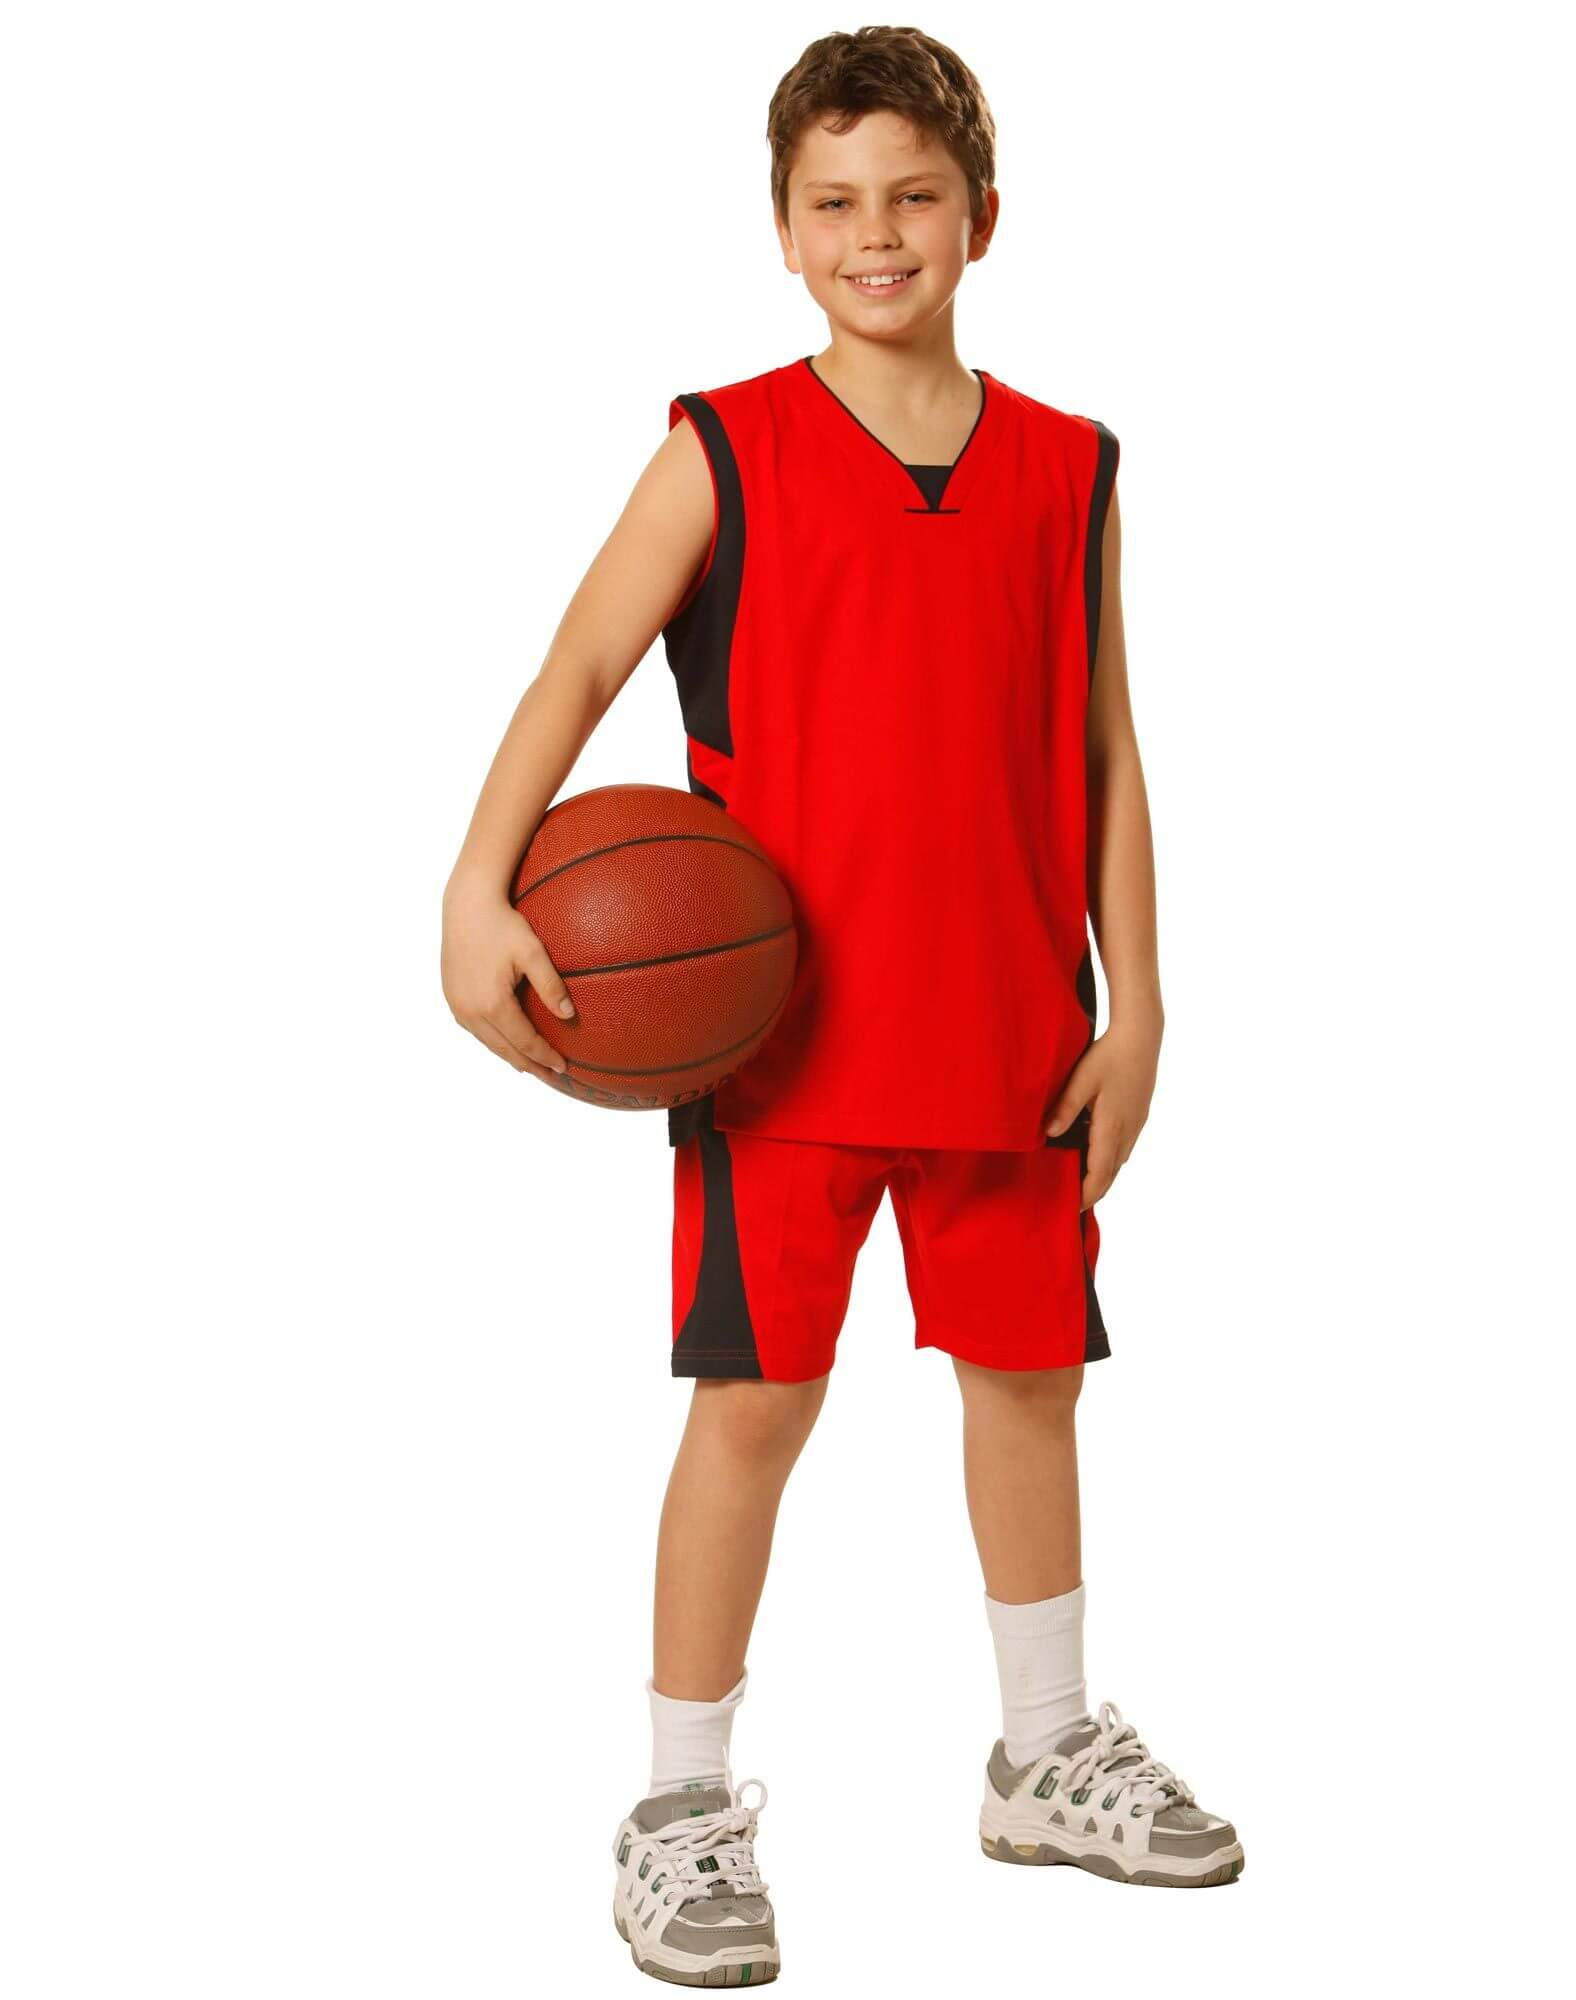 Kids Basketball Jerseys Manufacturers in Salem